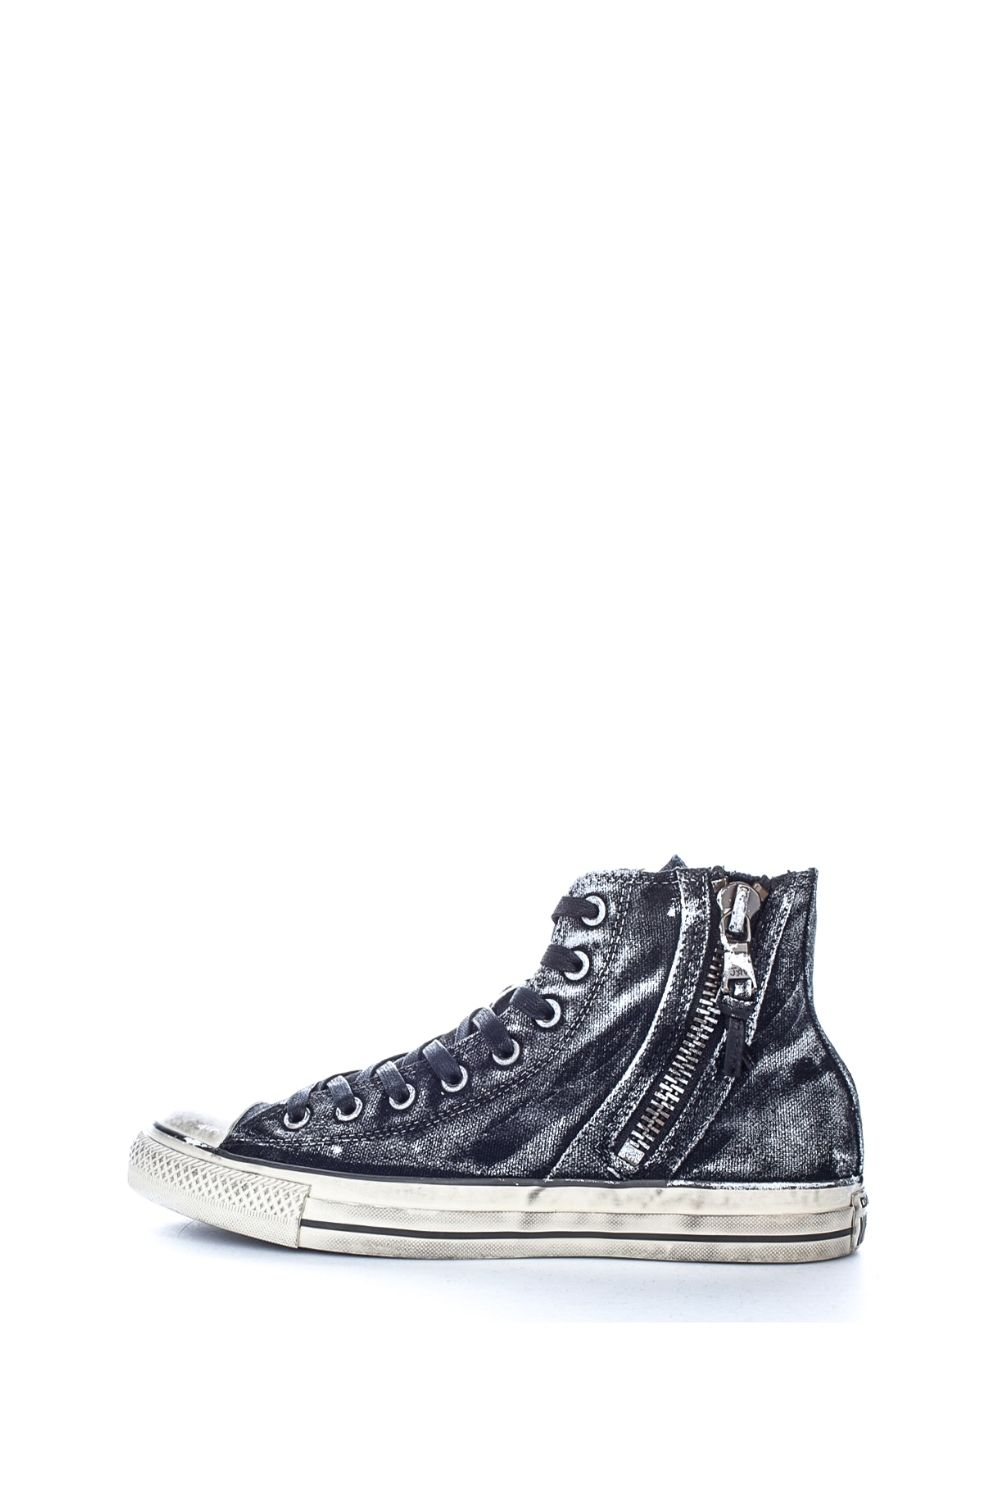 CONVERSE – Unisex ψηλά sneakers CONVERSE All Star John Varvatos X Chuck Taylor side zip μαύρα